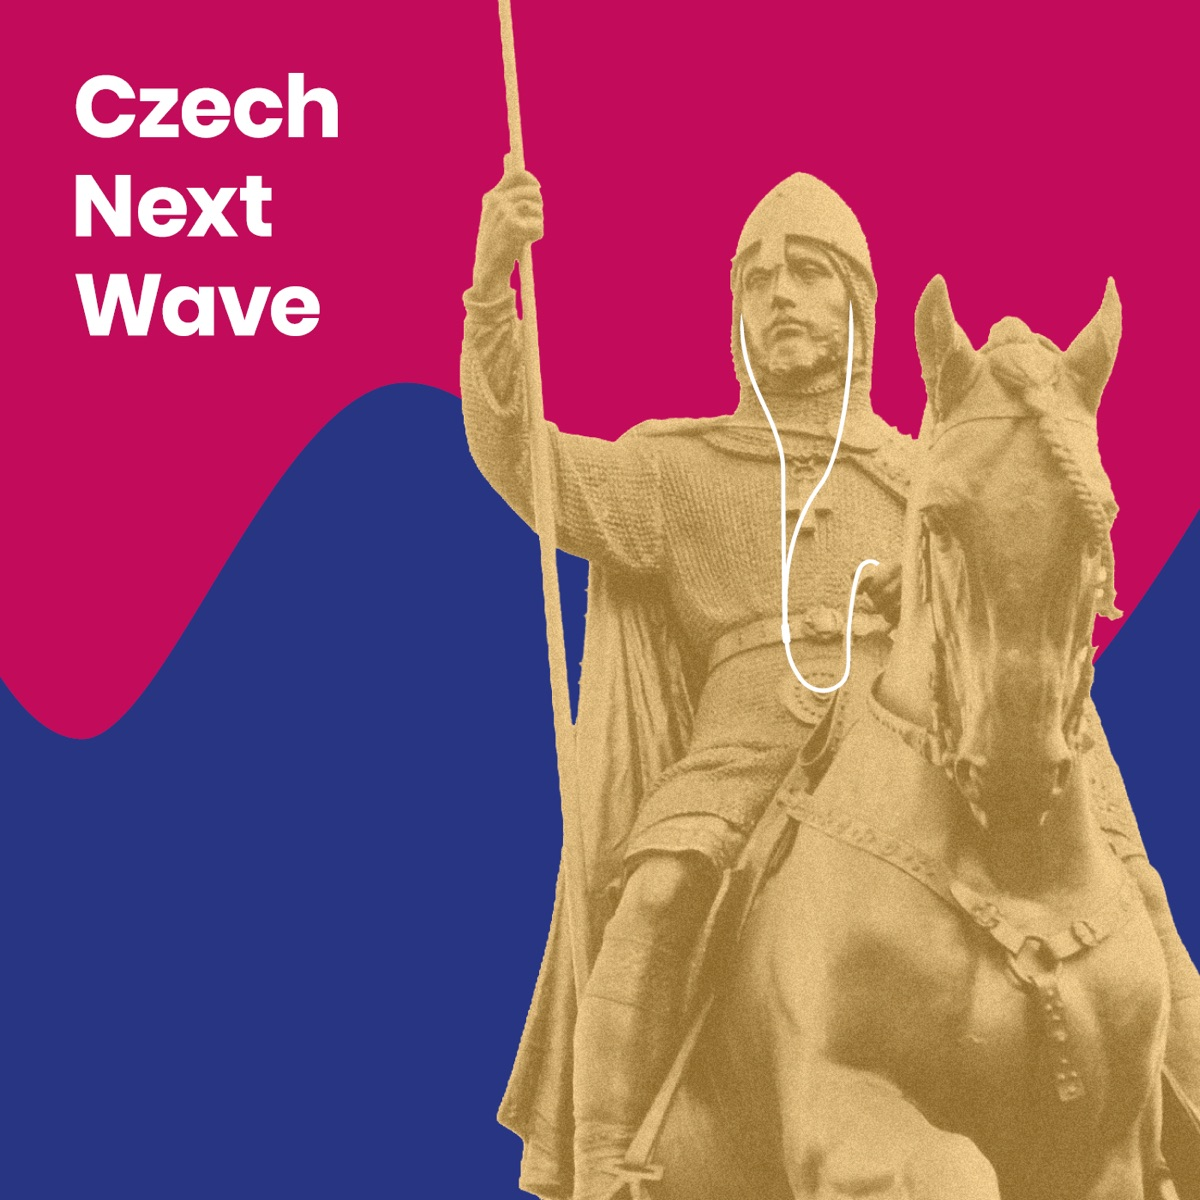 Czech Next Wave